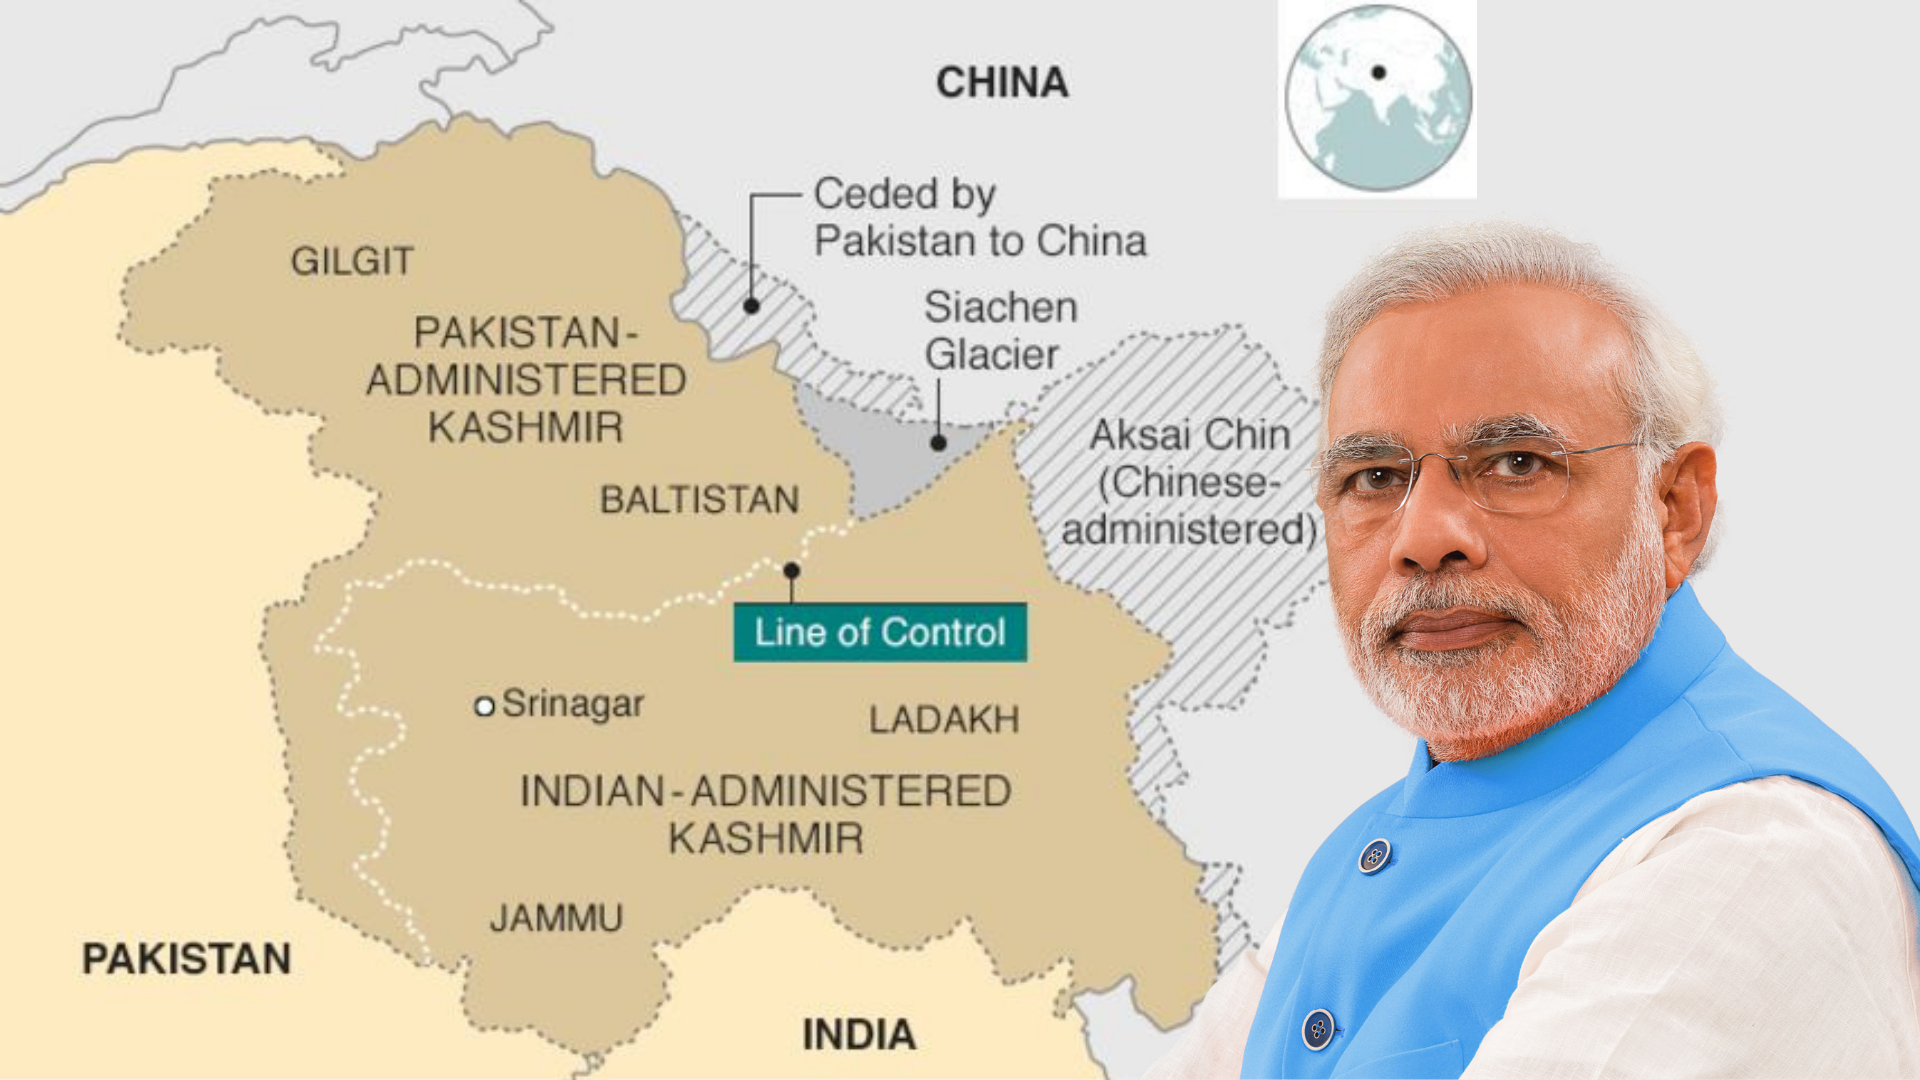 Will Kashmir Split? – 5 Geopolitical Effects You Need to Know